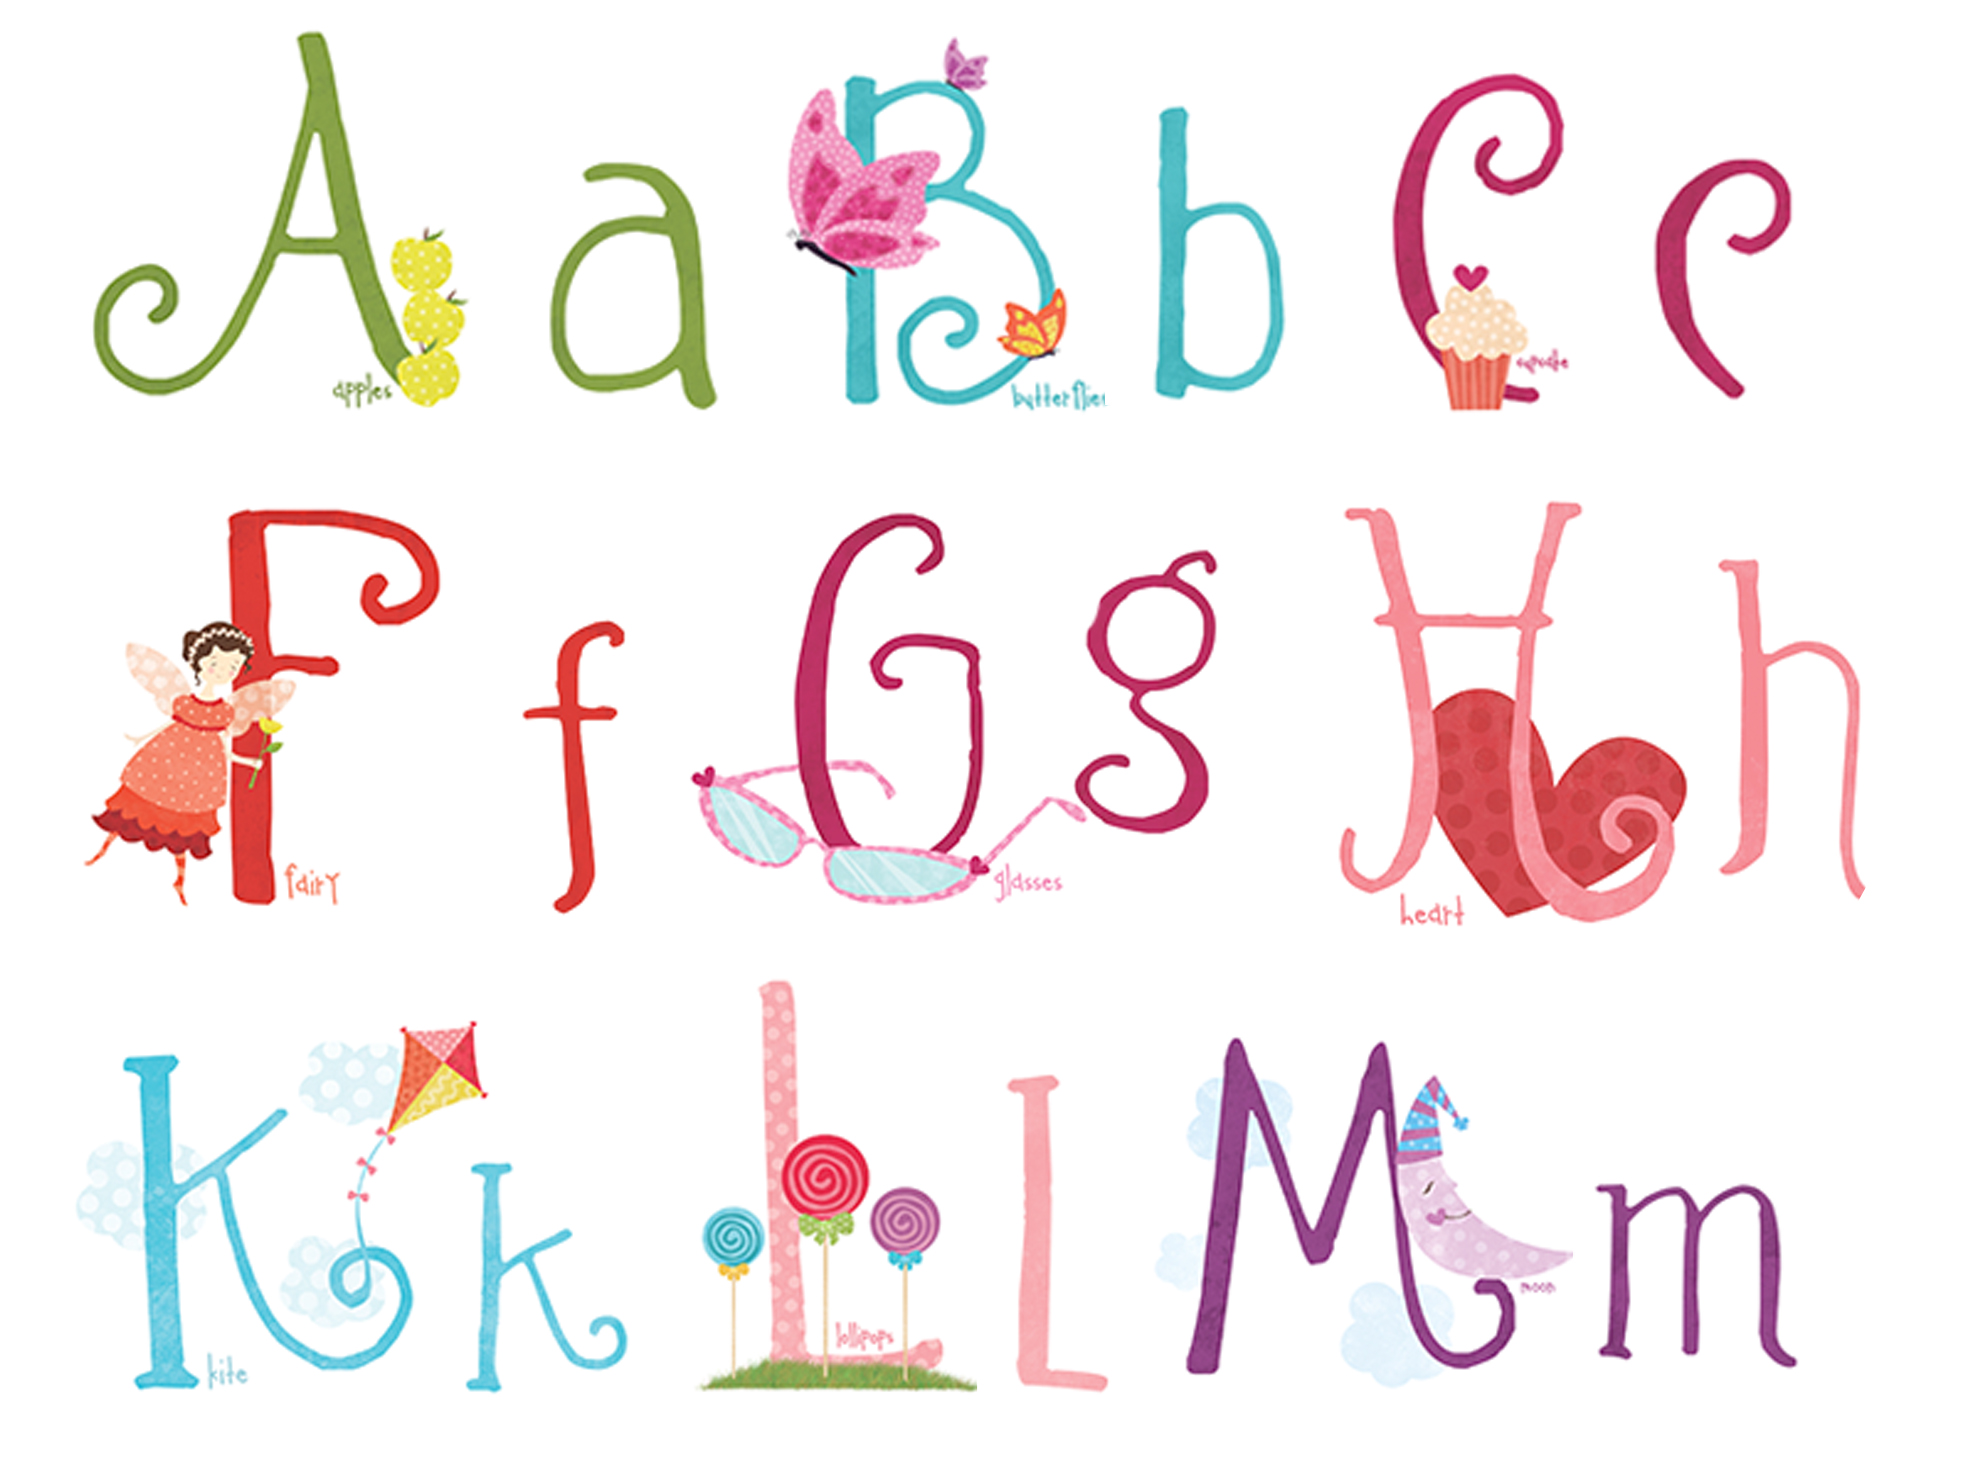 14 Cute Girly Fonts Images - Free Girly Fonts, Girly Fonts ... Girly Fonts